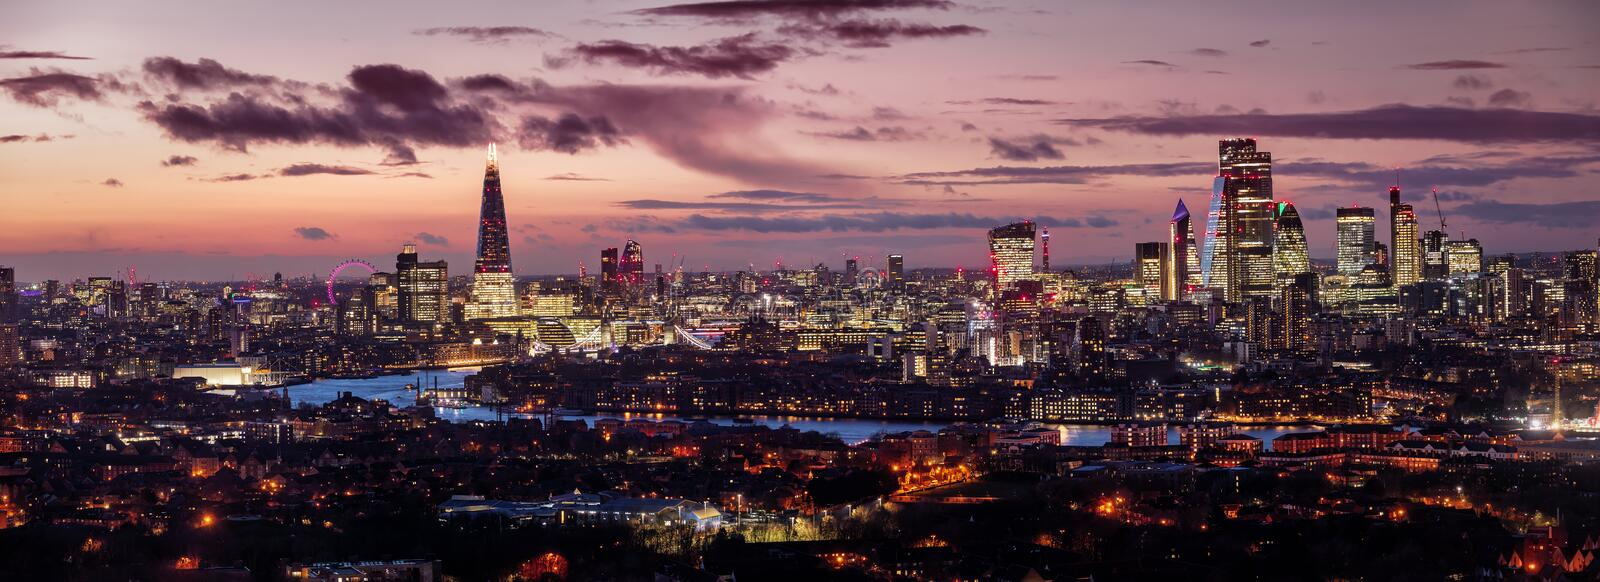 The illuminated skyline of London, United Kingdom, after a sunset. Wide panoramic view of the illuminated skyline of London, United Kingdom, after a sunset with royalty free stock images